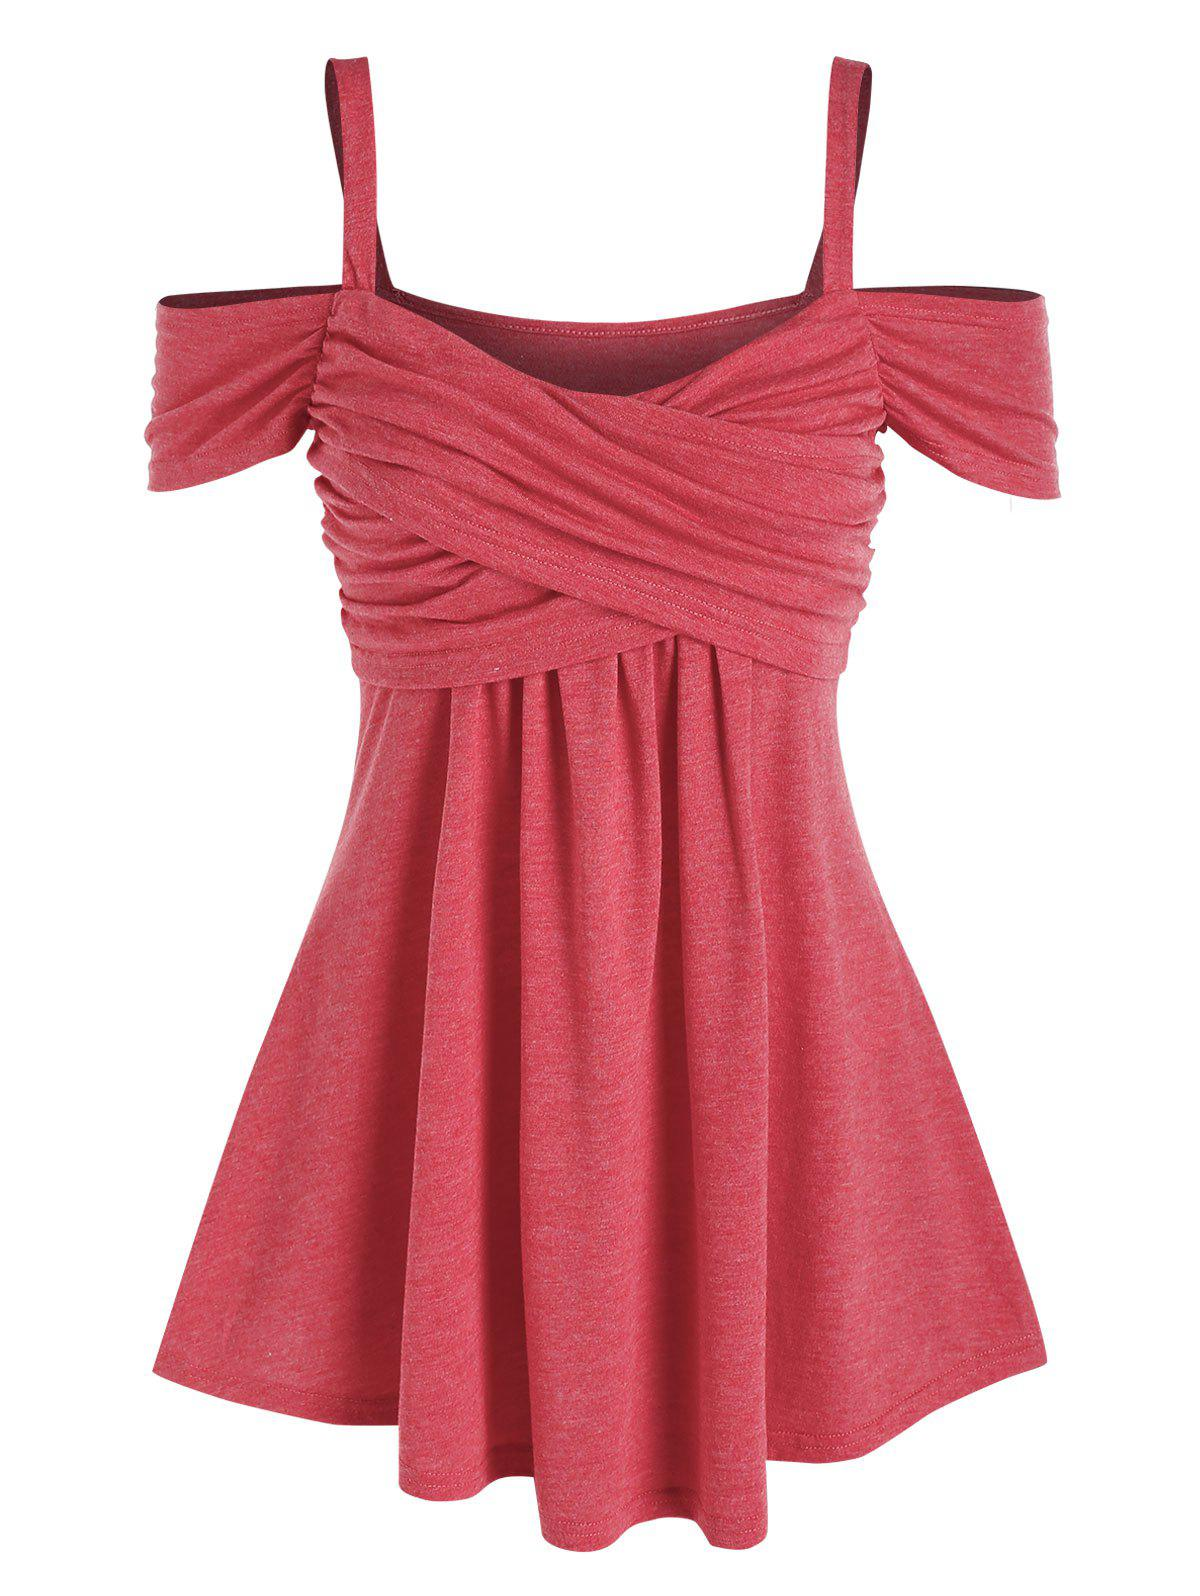 Cold Shoulder Crossover Heathered T-shirt - RED XL